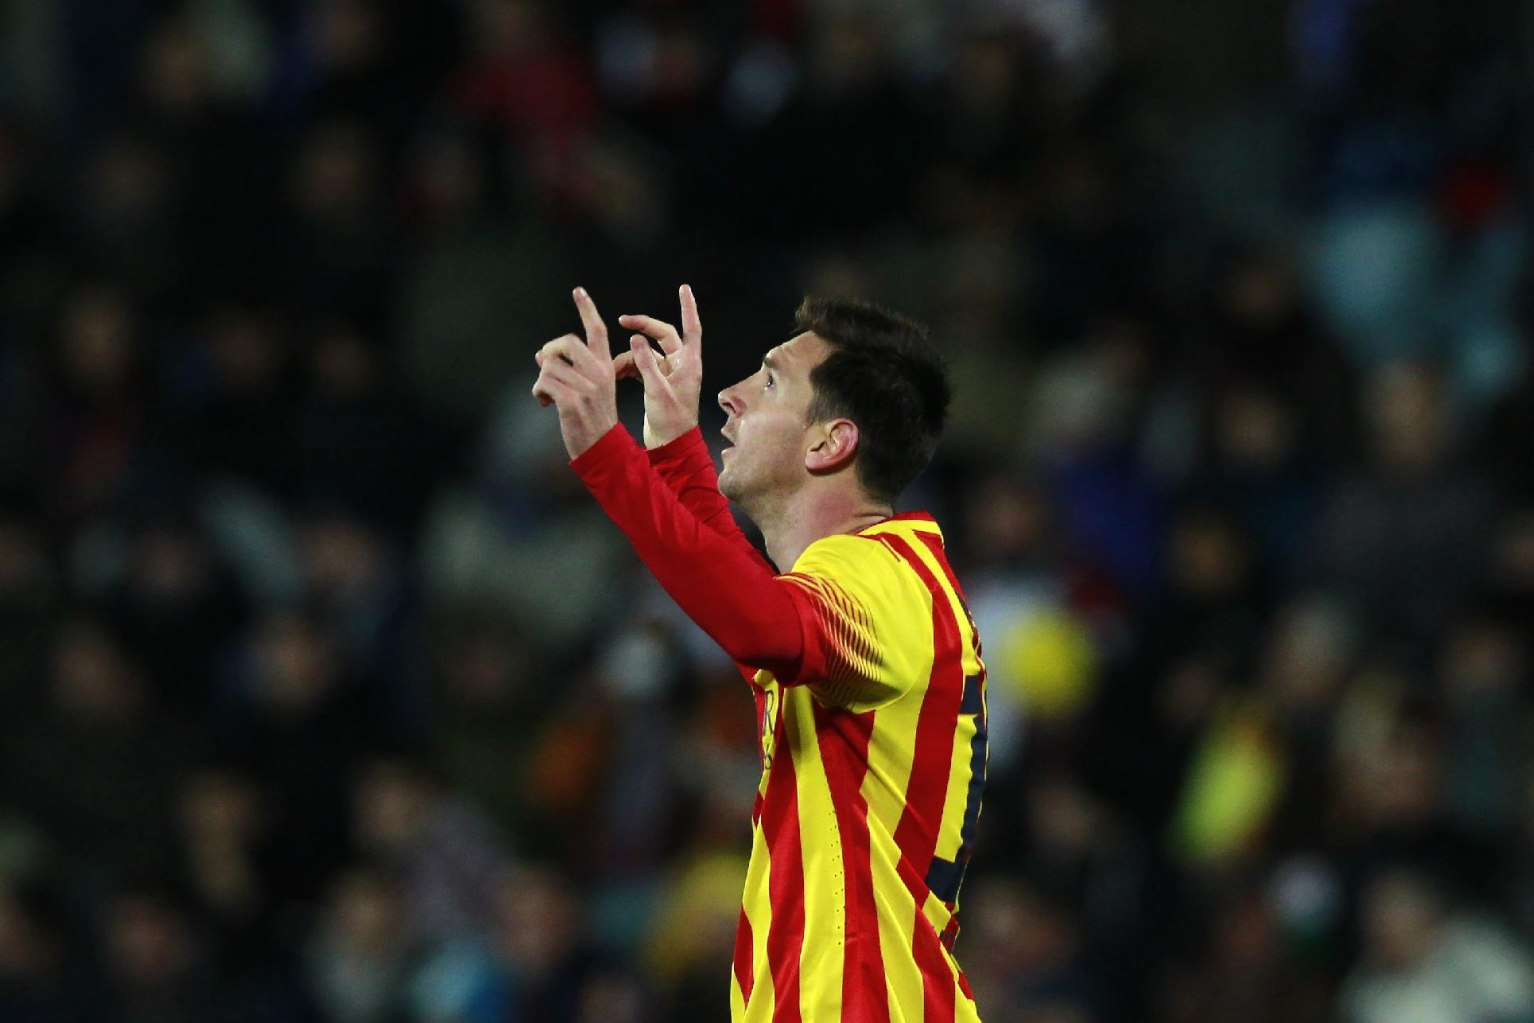 Messi celebrating his masterpiece goal against Getafe